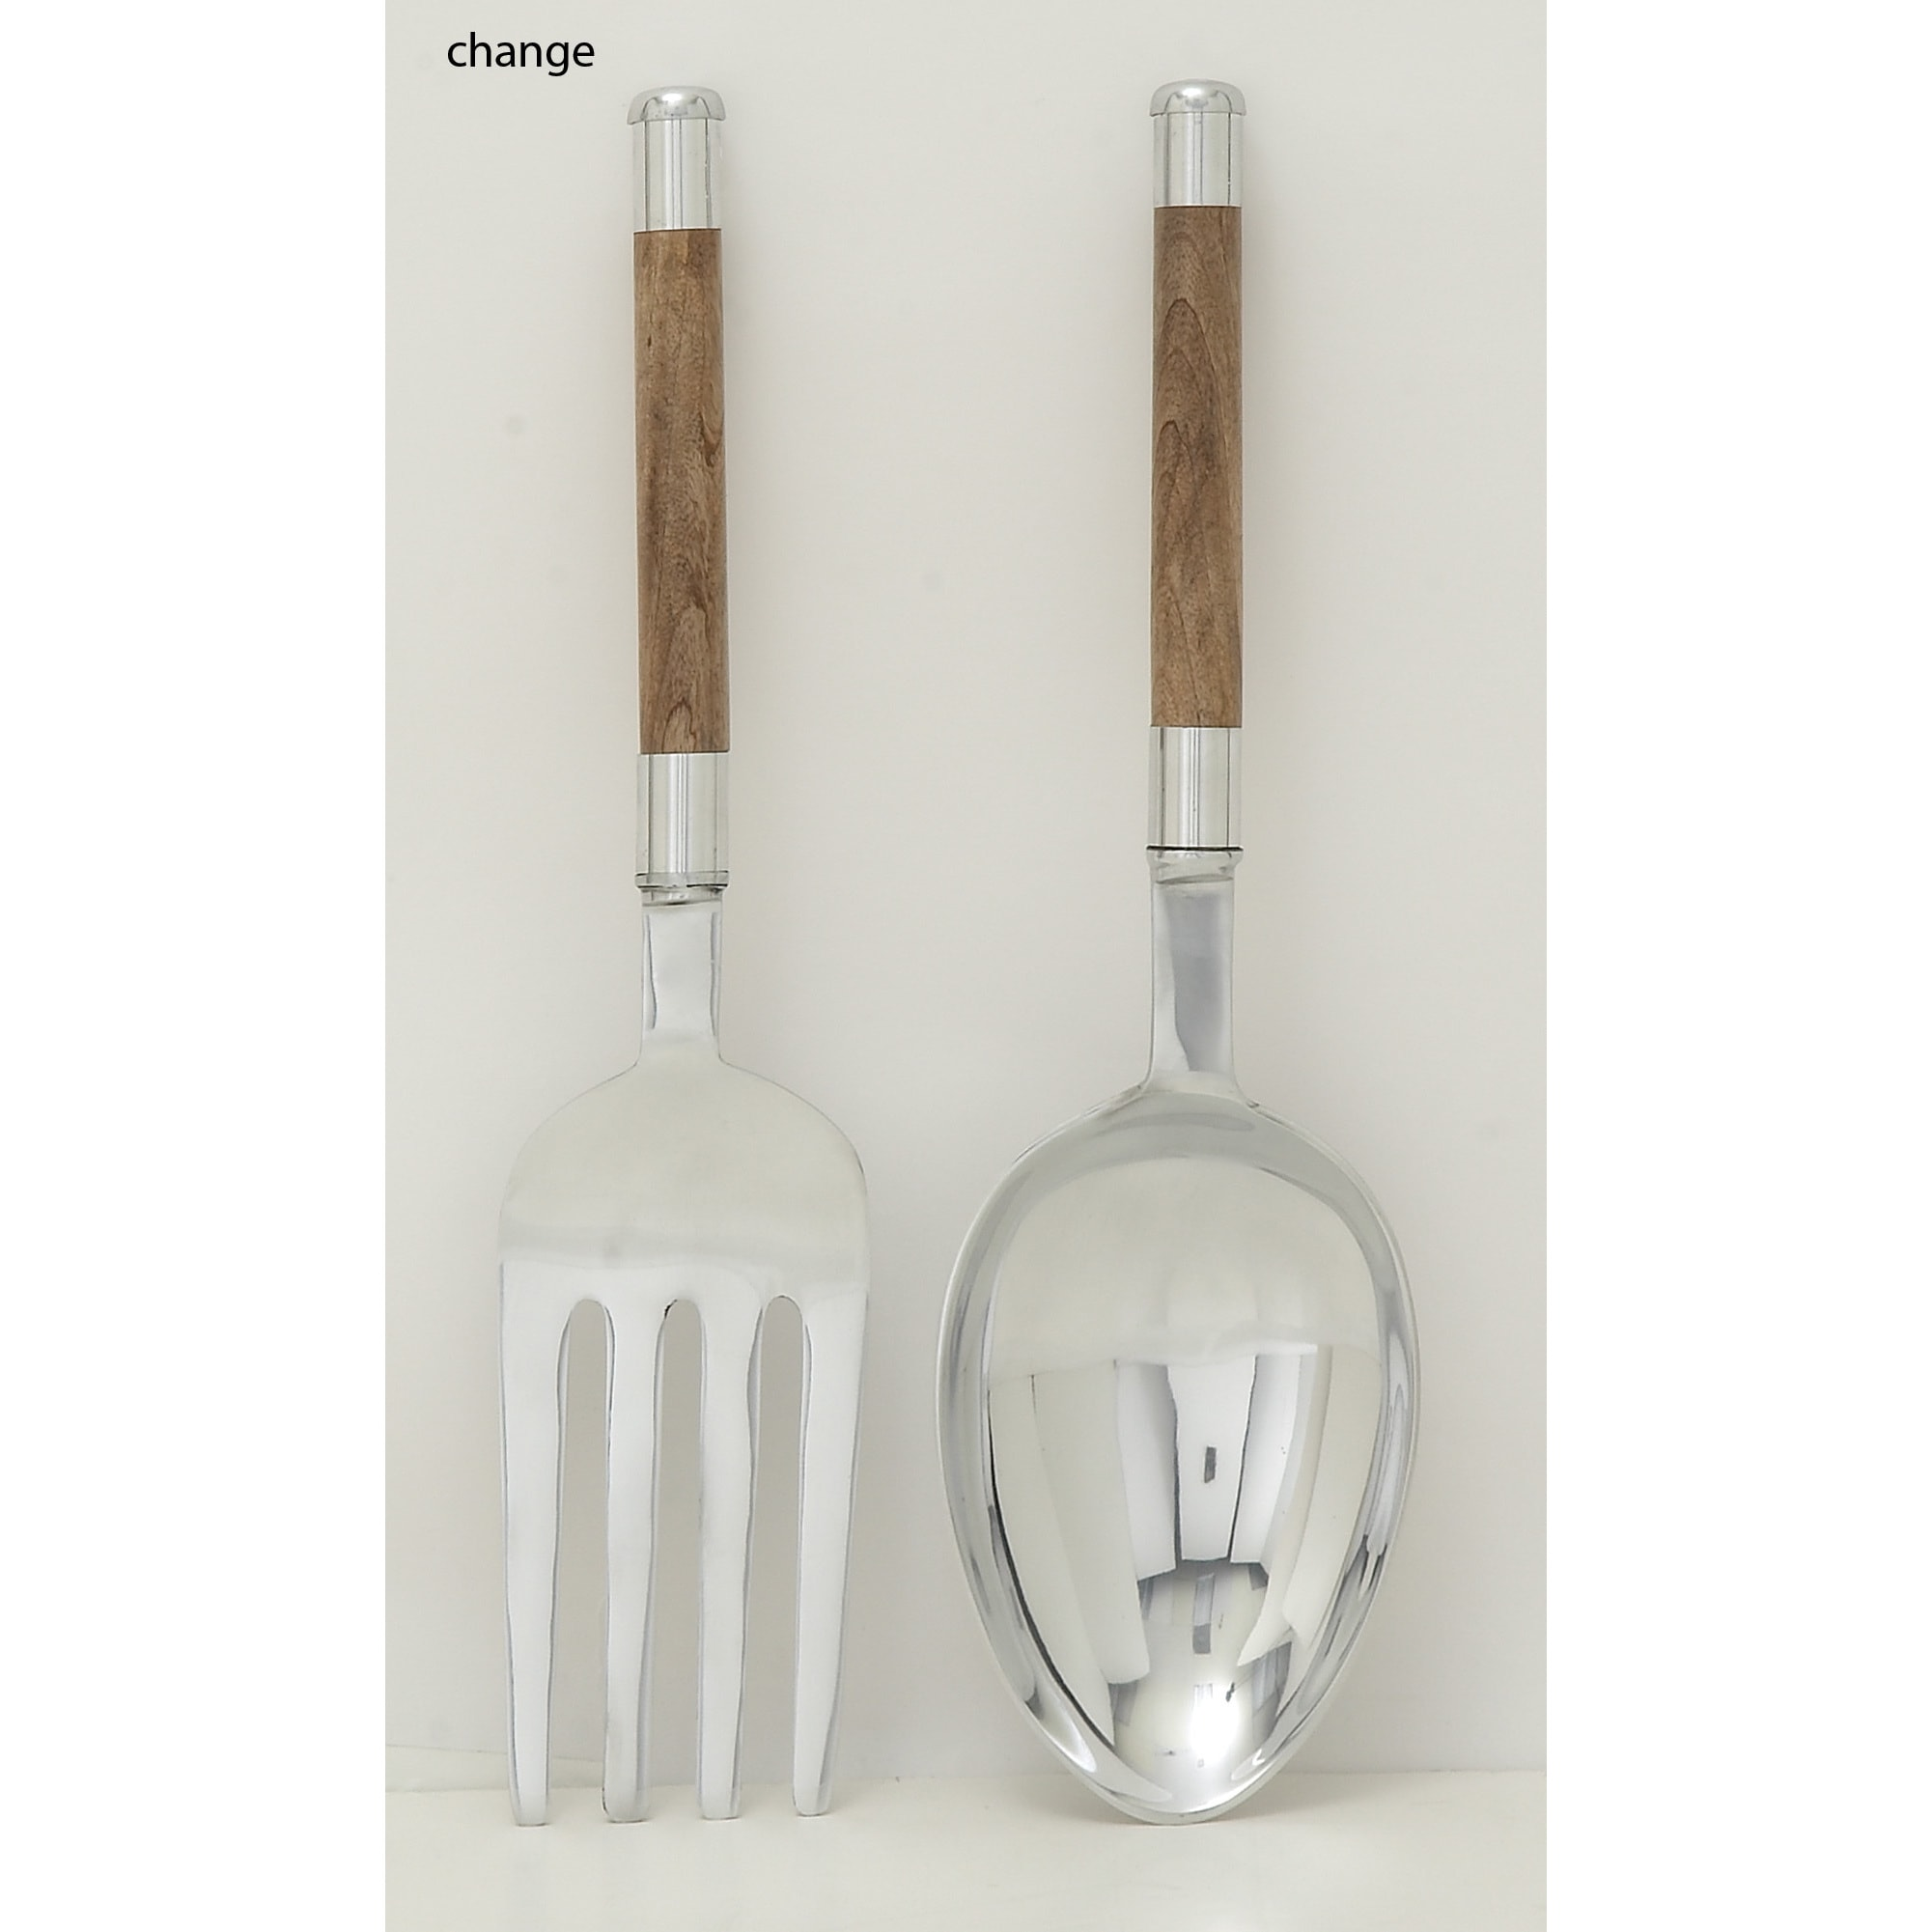 Shop aluminum wood kitchen set of 2 7 inch x 22 inch seasonal accessory free shipping on orders over 45 overstock com 11390252